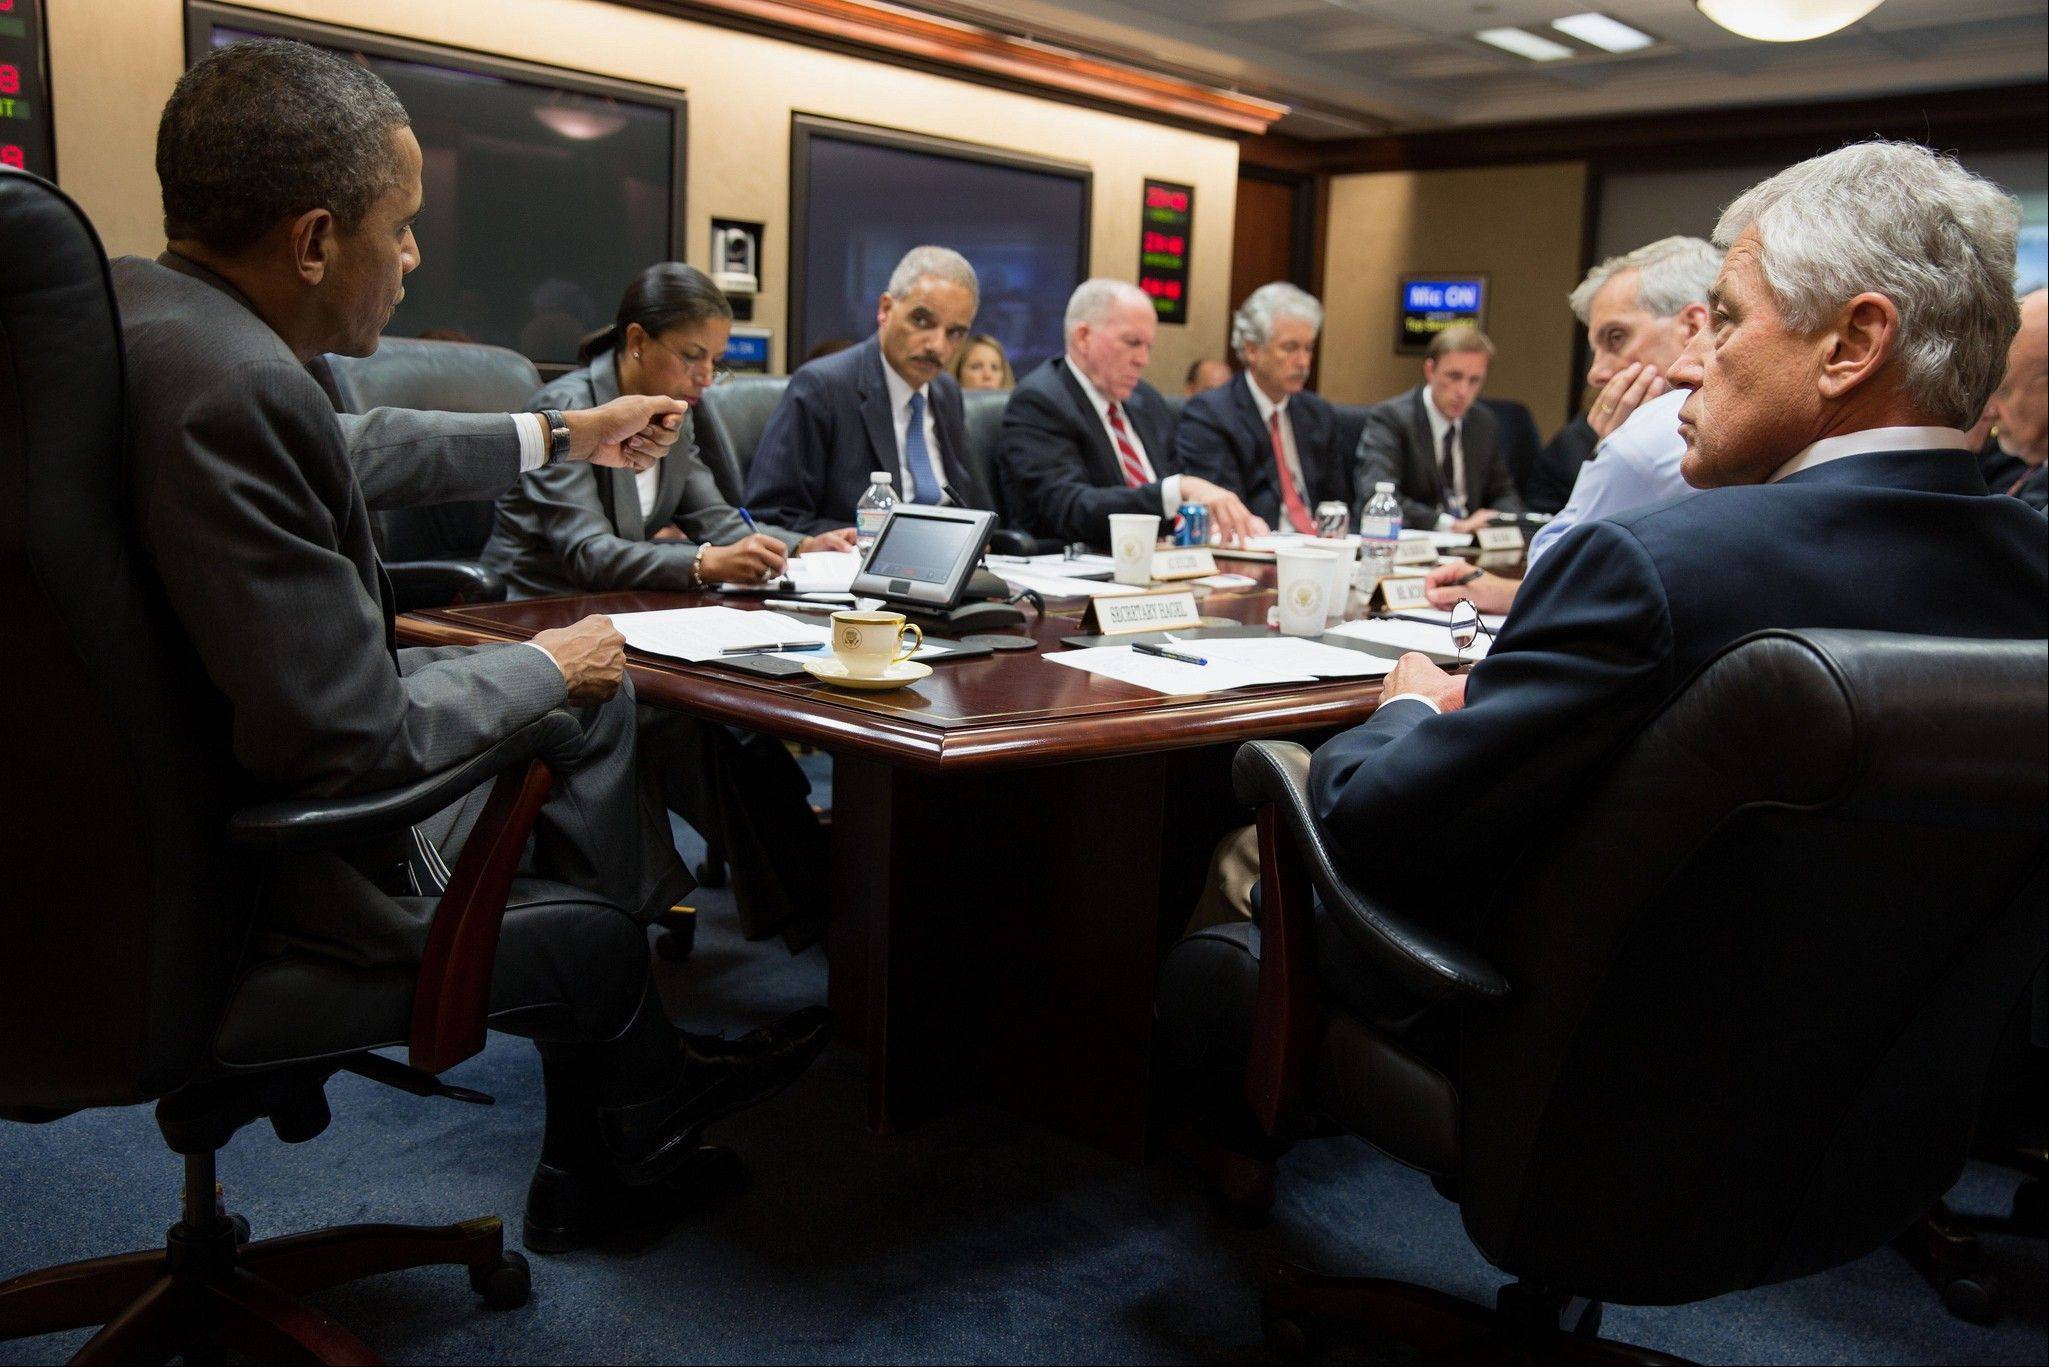 President Barack Obama, left, meets with members of his national security team to discuss the situation in Egypt in the Situation Room of the White House in Washington. While the Obama administration throws its support behind Egypt's military, some members of Congress are looking at withholding some or all of America's annual $1.5 billion aid package if a civilian government isn't quickly restored.